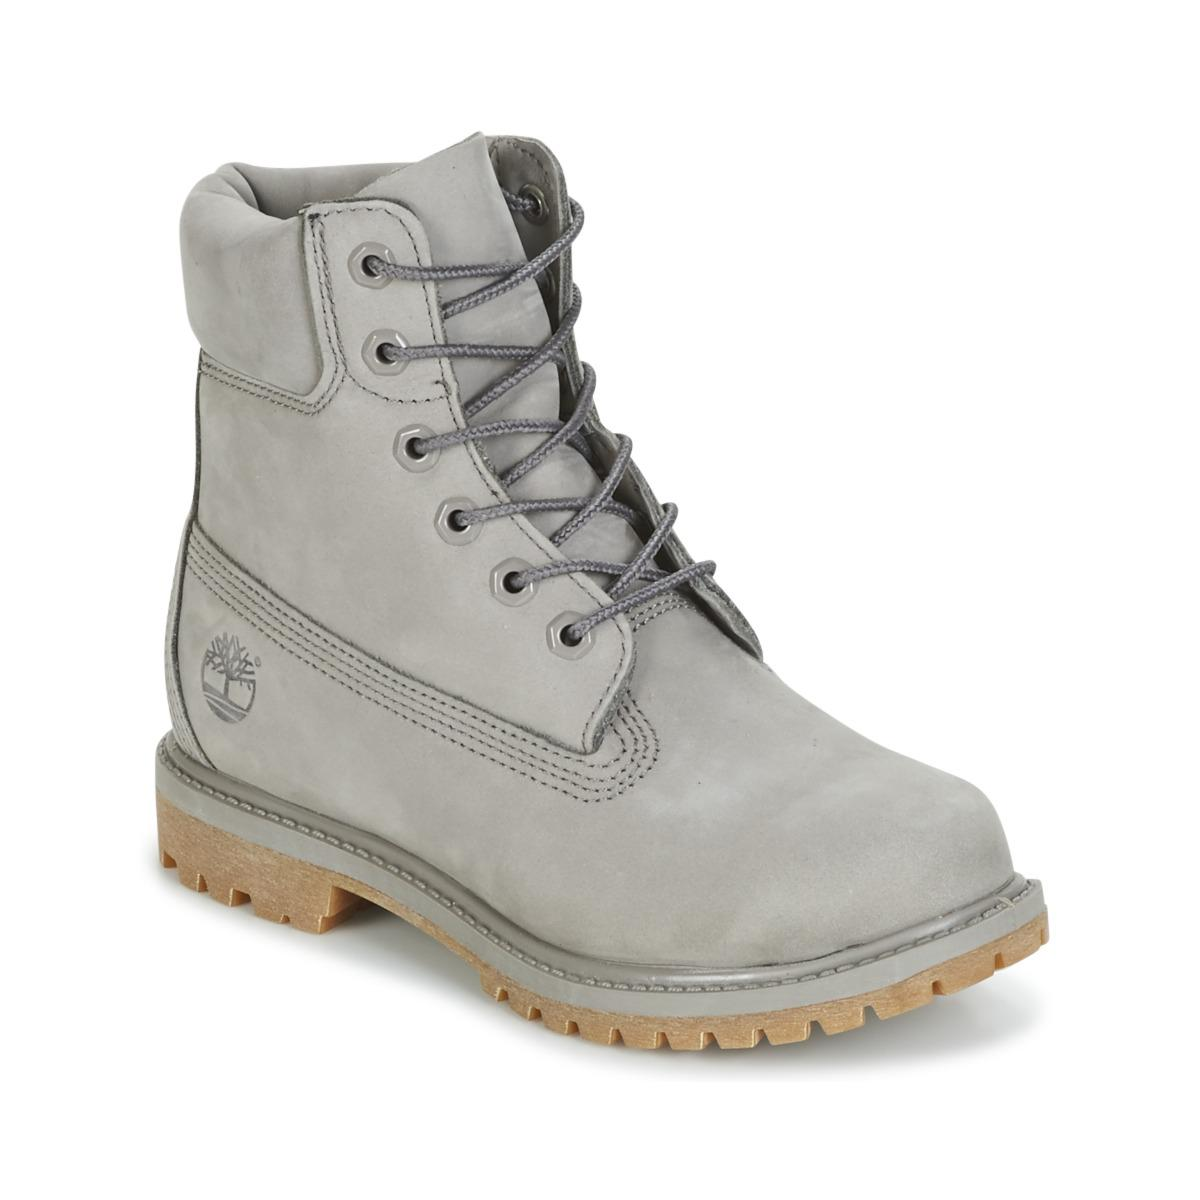 f35e955648 Timberland 6in Premium Boot - W Mid Boots in Gray - Save 15% - Lyst